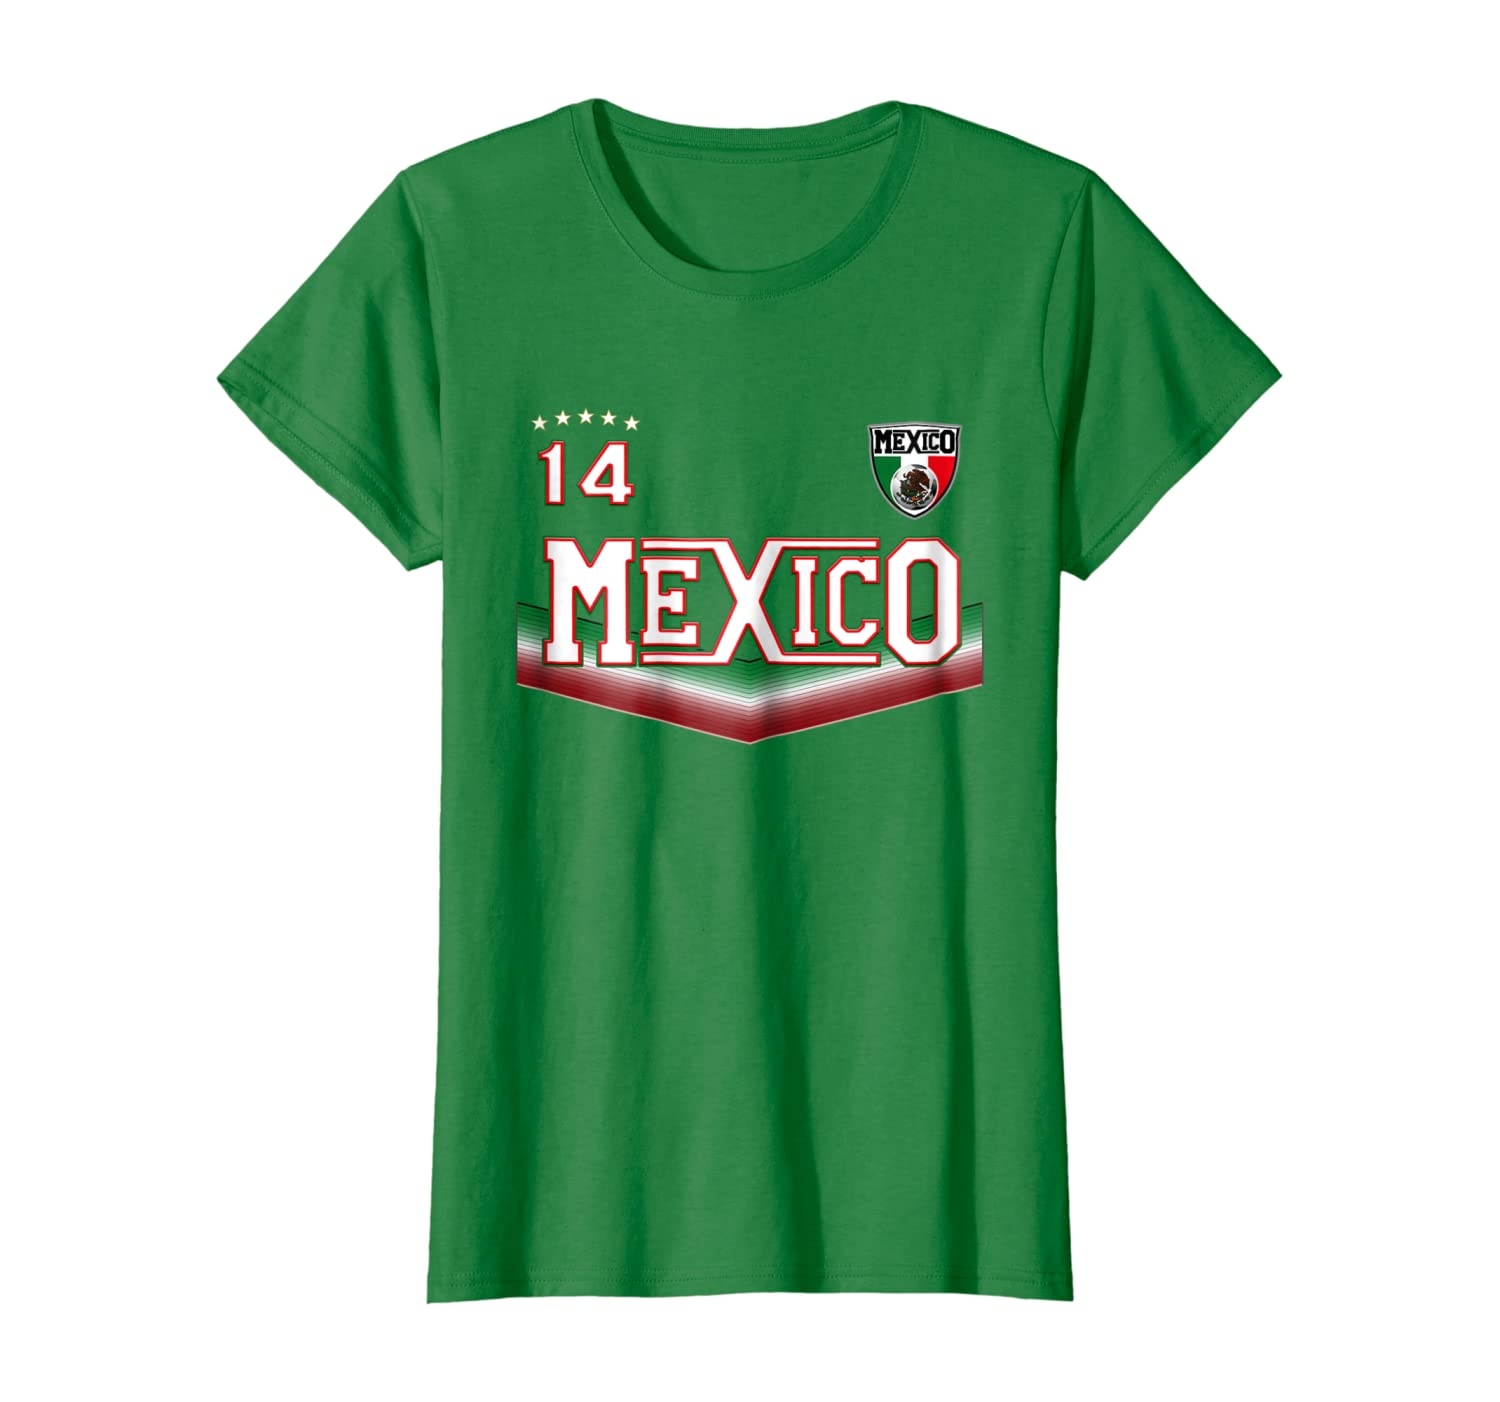 Amazon Com Mexican Soccer T Shirt With Mexico Flag Colors And Number 14 Clothing